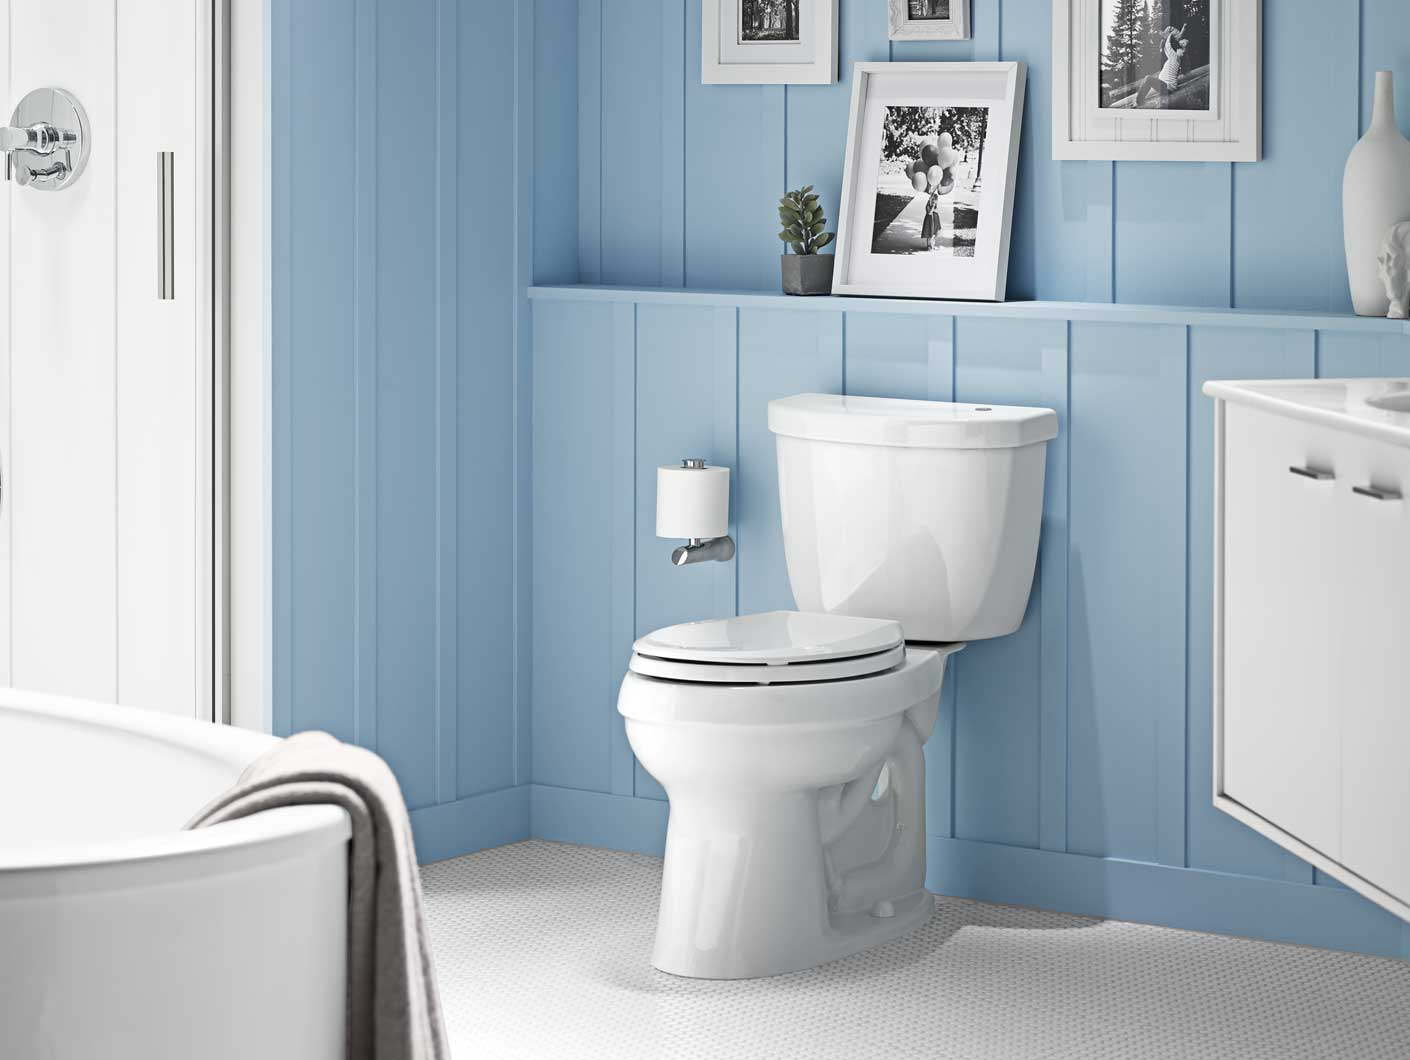 Bathroom and toilet accessories - Bathroom And Toilet Accessories 19